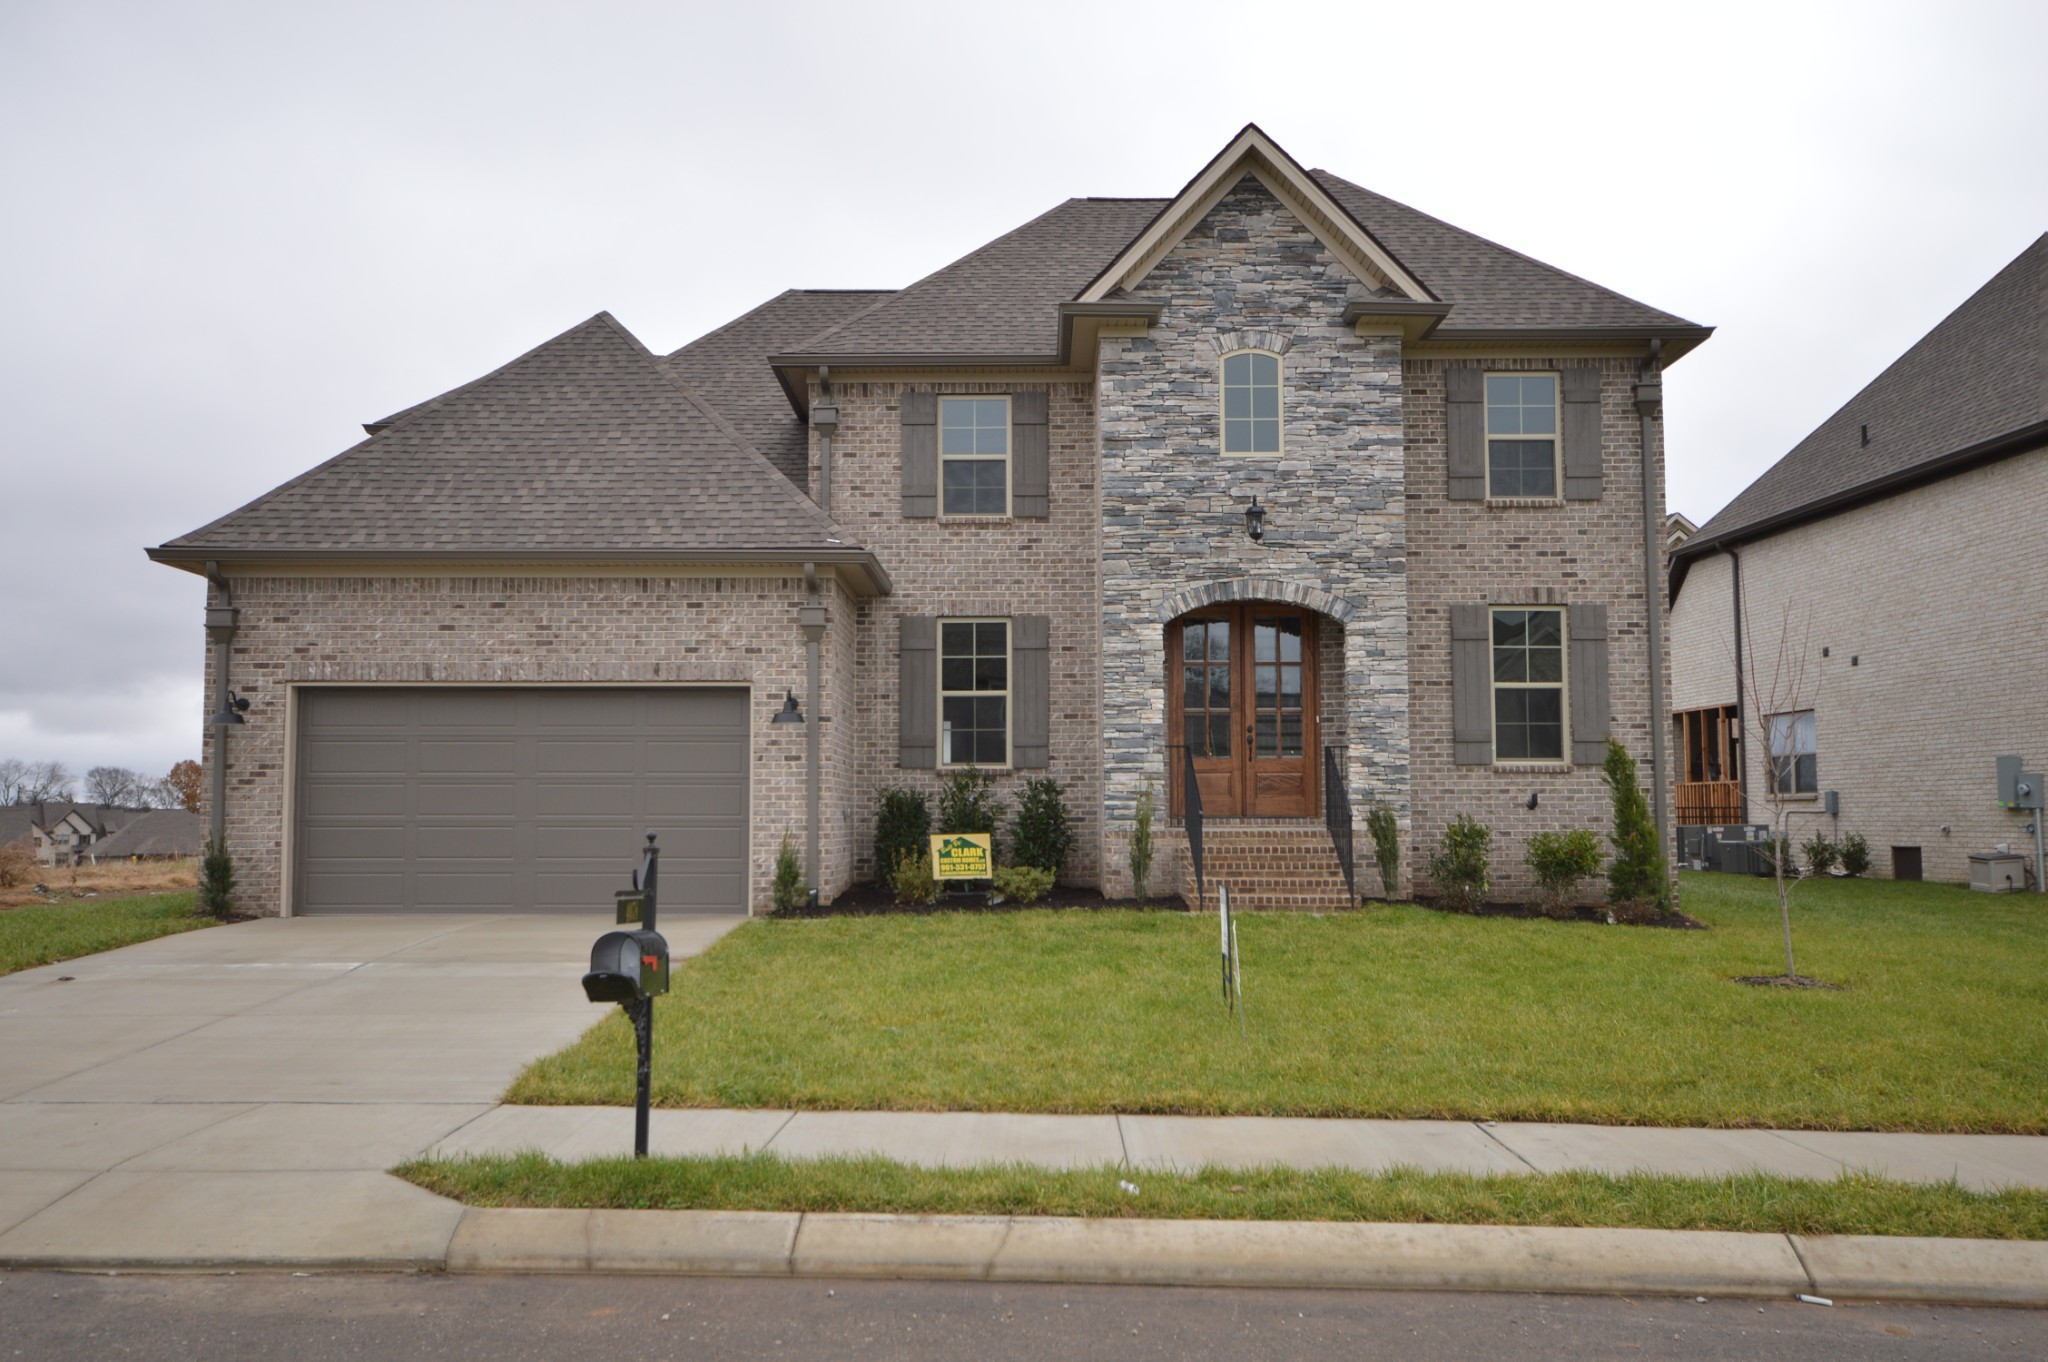 4078 Miles Johnson Pkwy (394) 37174 - One of Spring Hill Homes for Sale